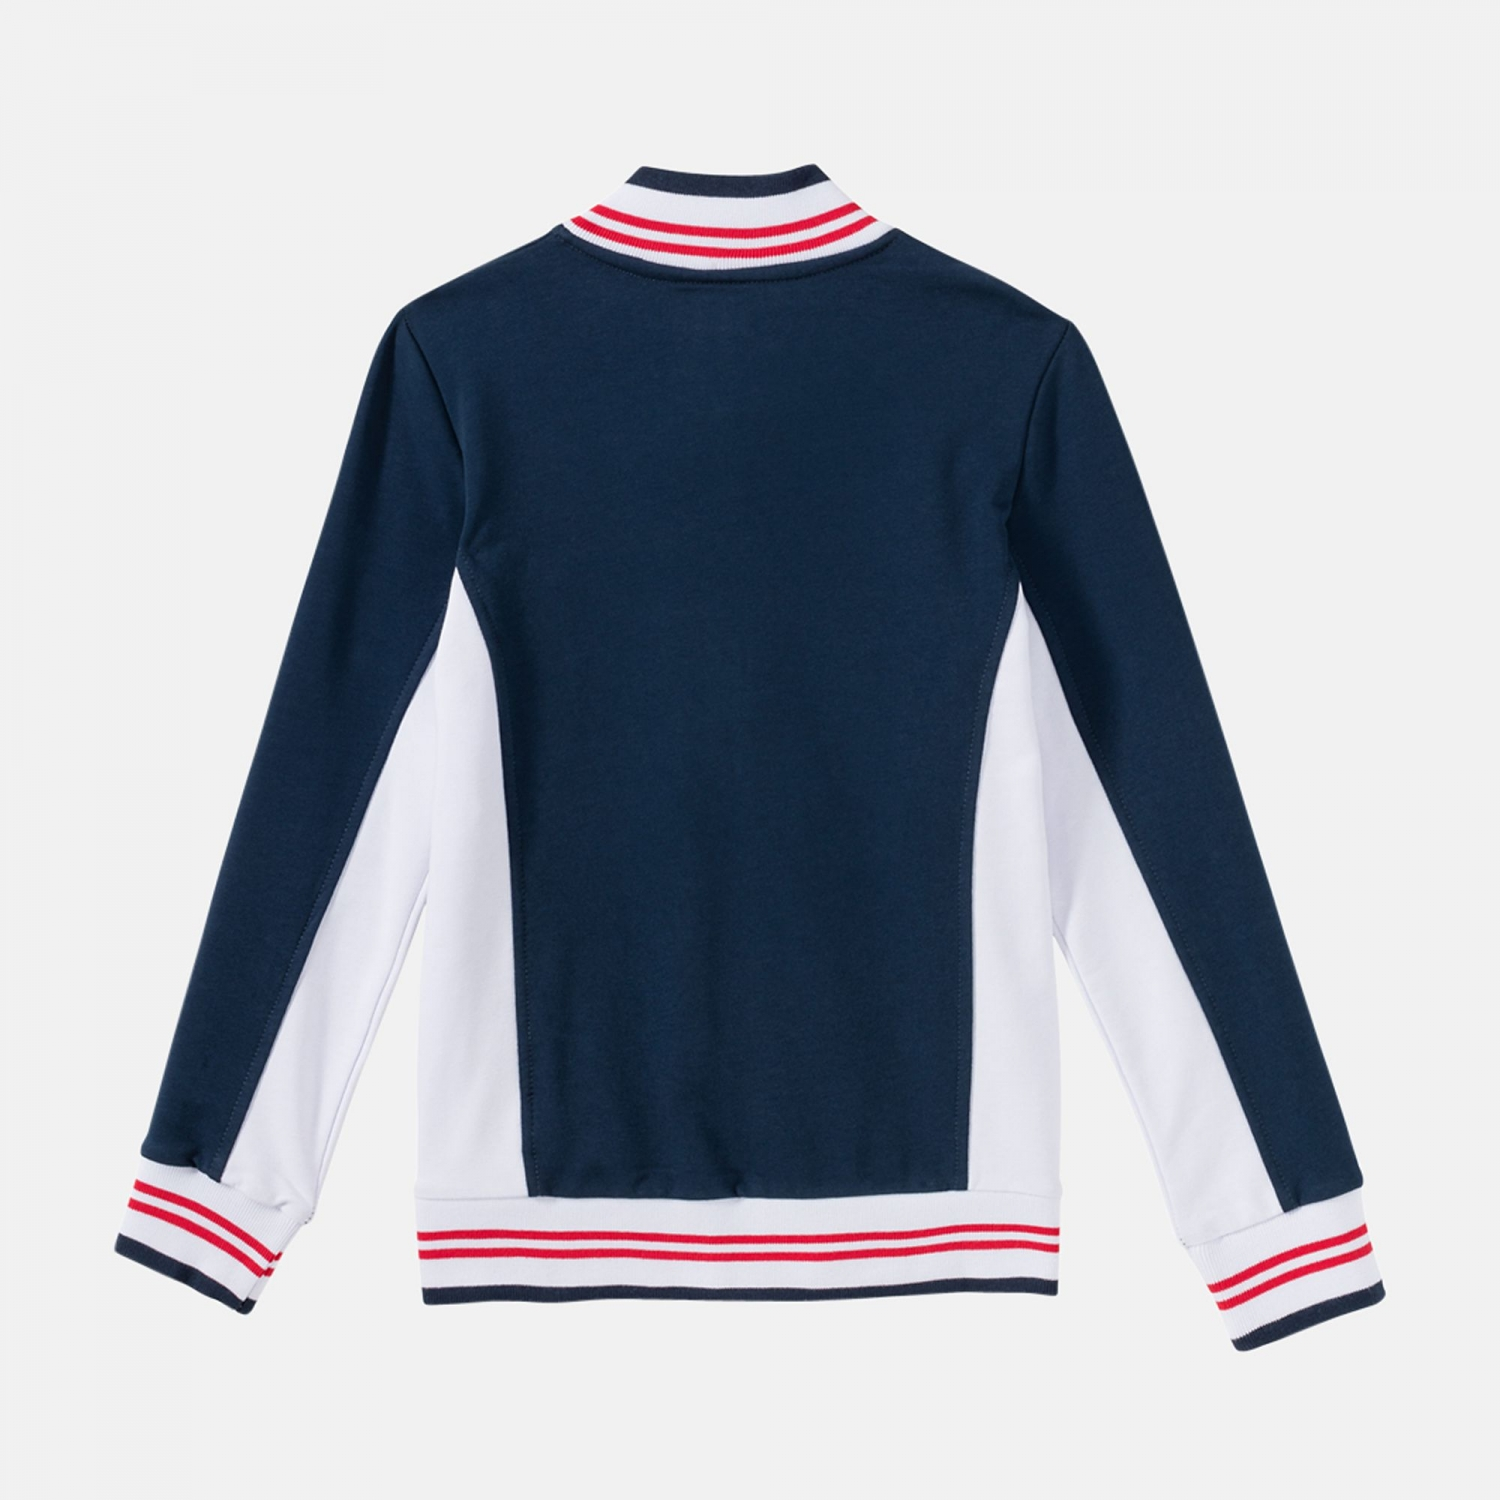 Fila Kids Jacket Oscar blue Bild 2